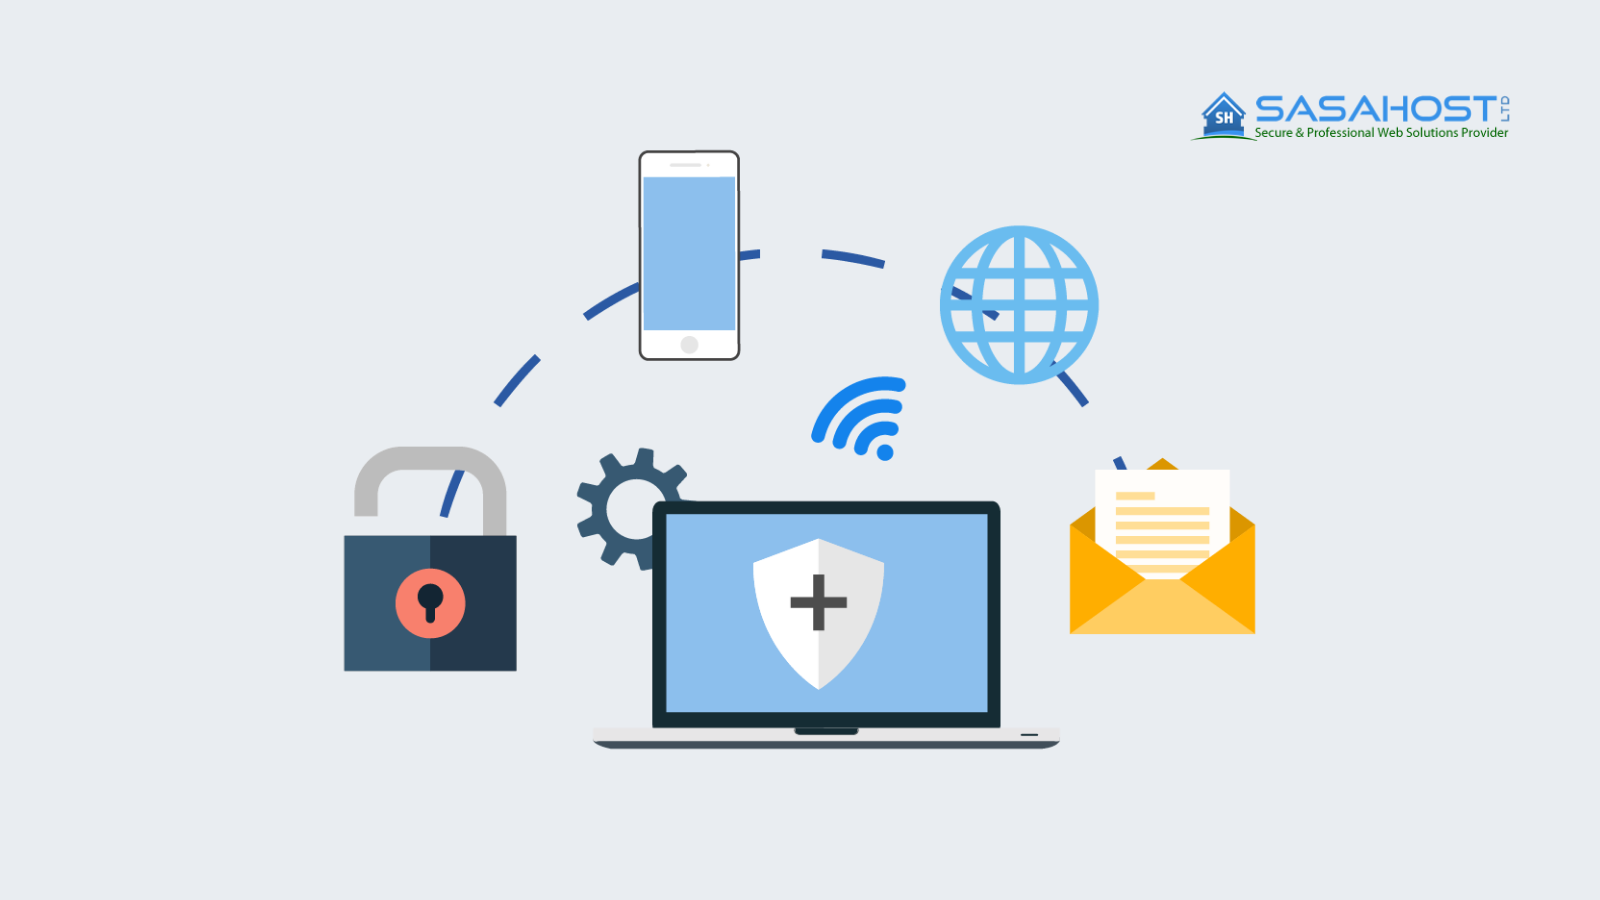 Does your Web Host affect your Website's Security